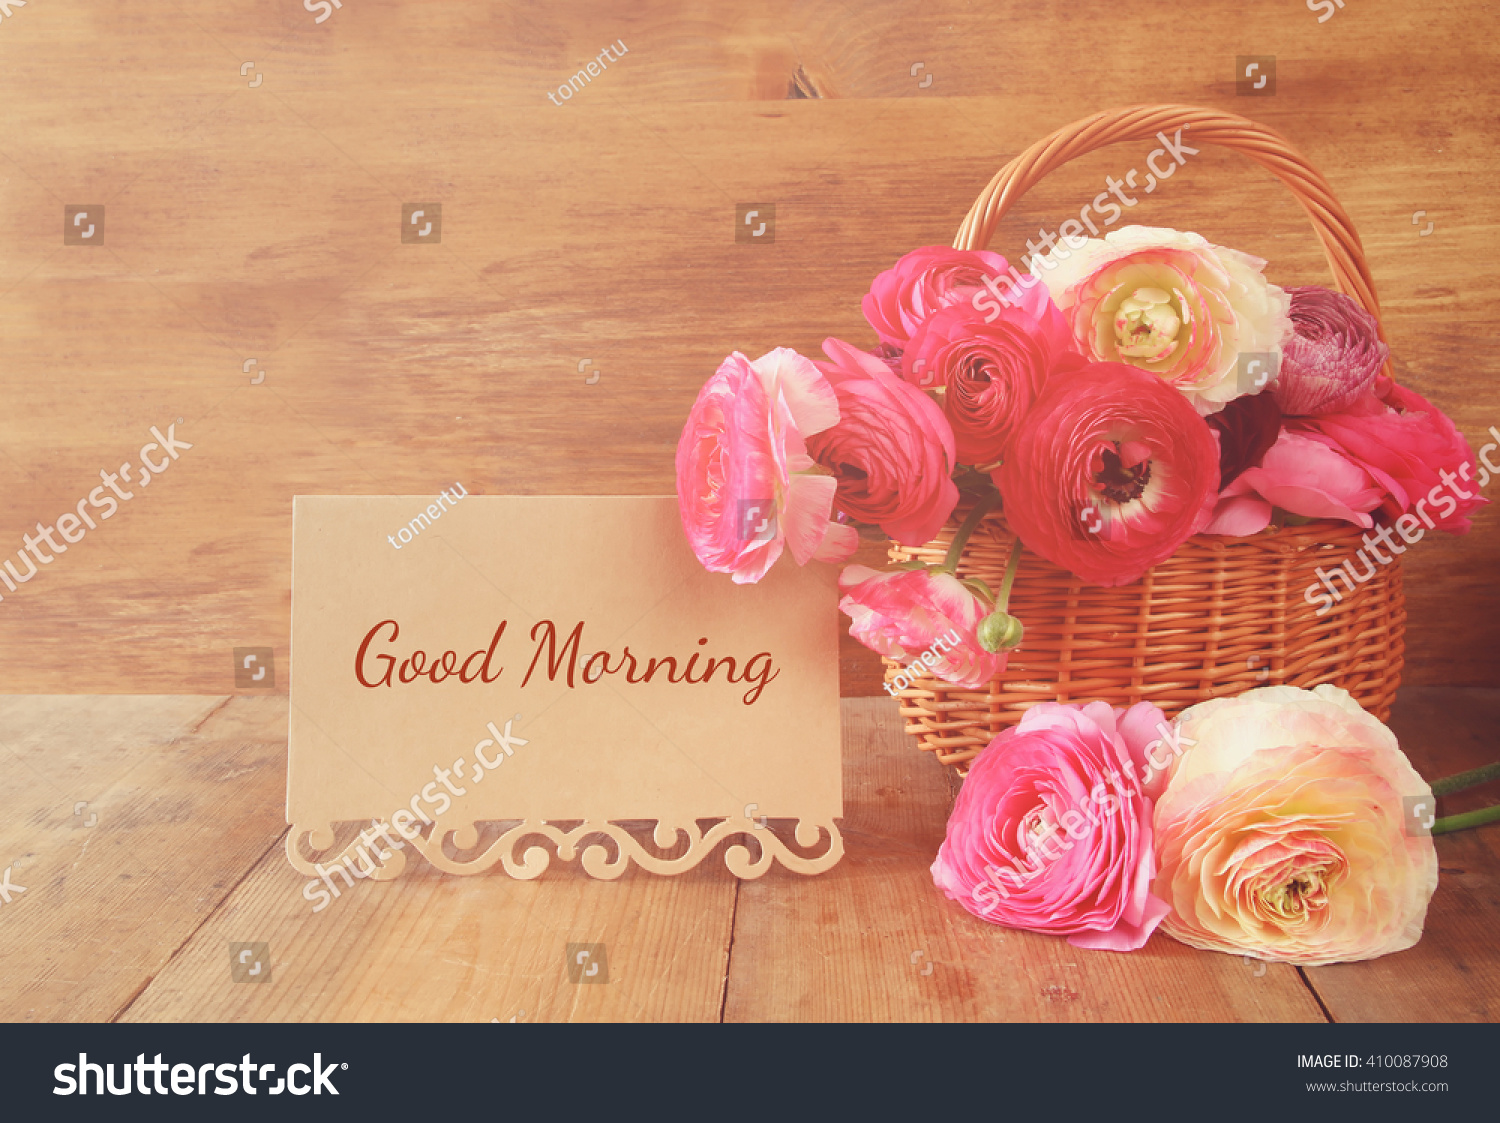 Image beautiful flowers next card text stock photo edit now image of beautiful flowers next card with text good morning vintage filtered izmirmasajfo